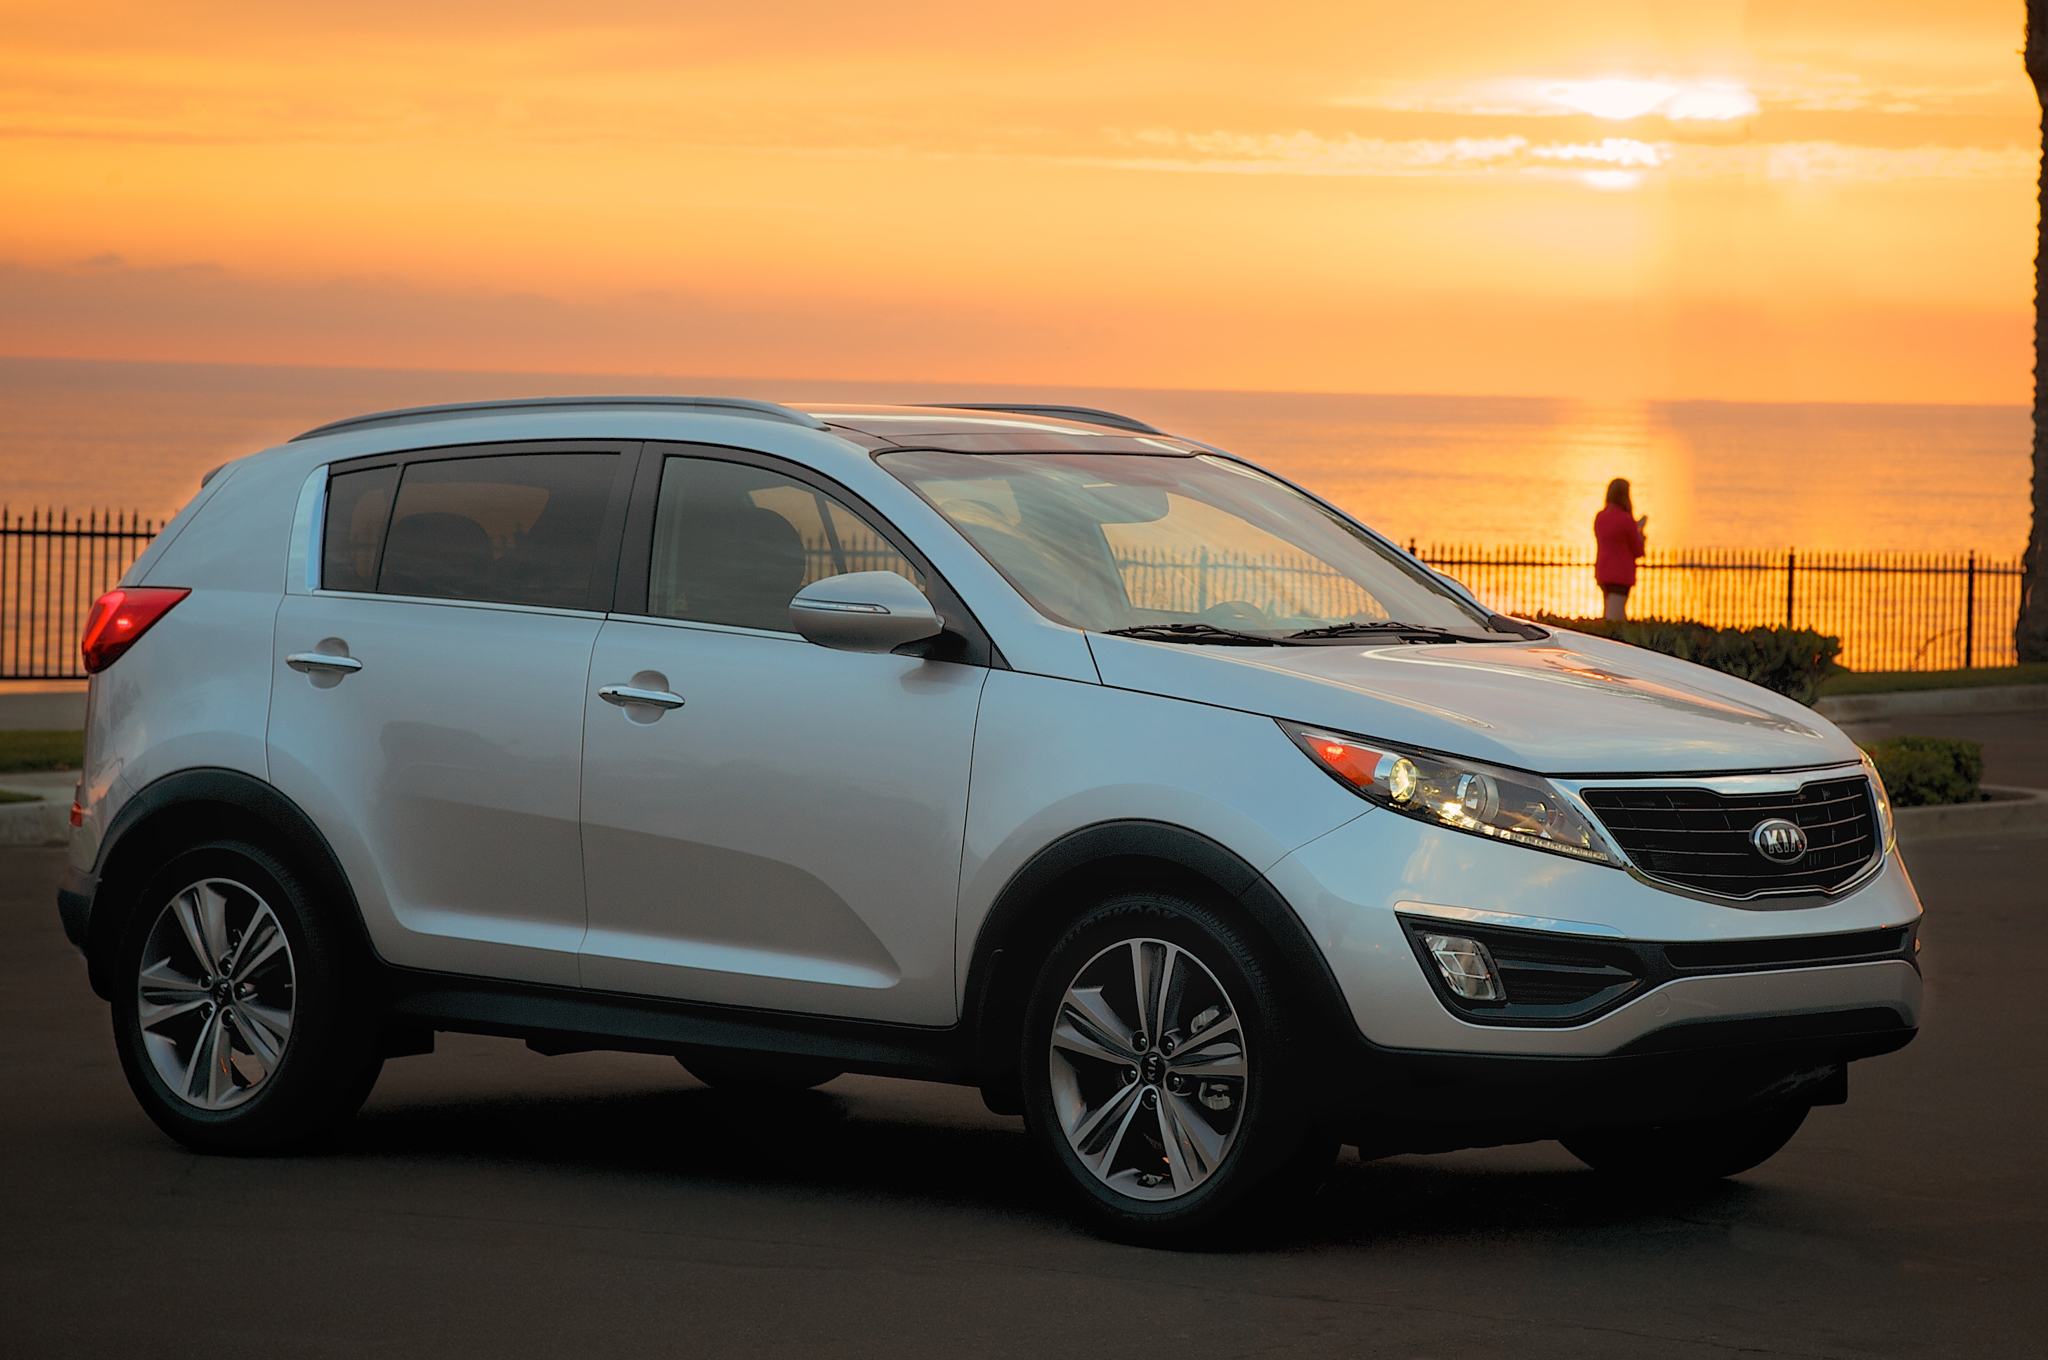 Updated 2014 Kia Sportage Priced at $22,450, Tops Out at $29,250